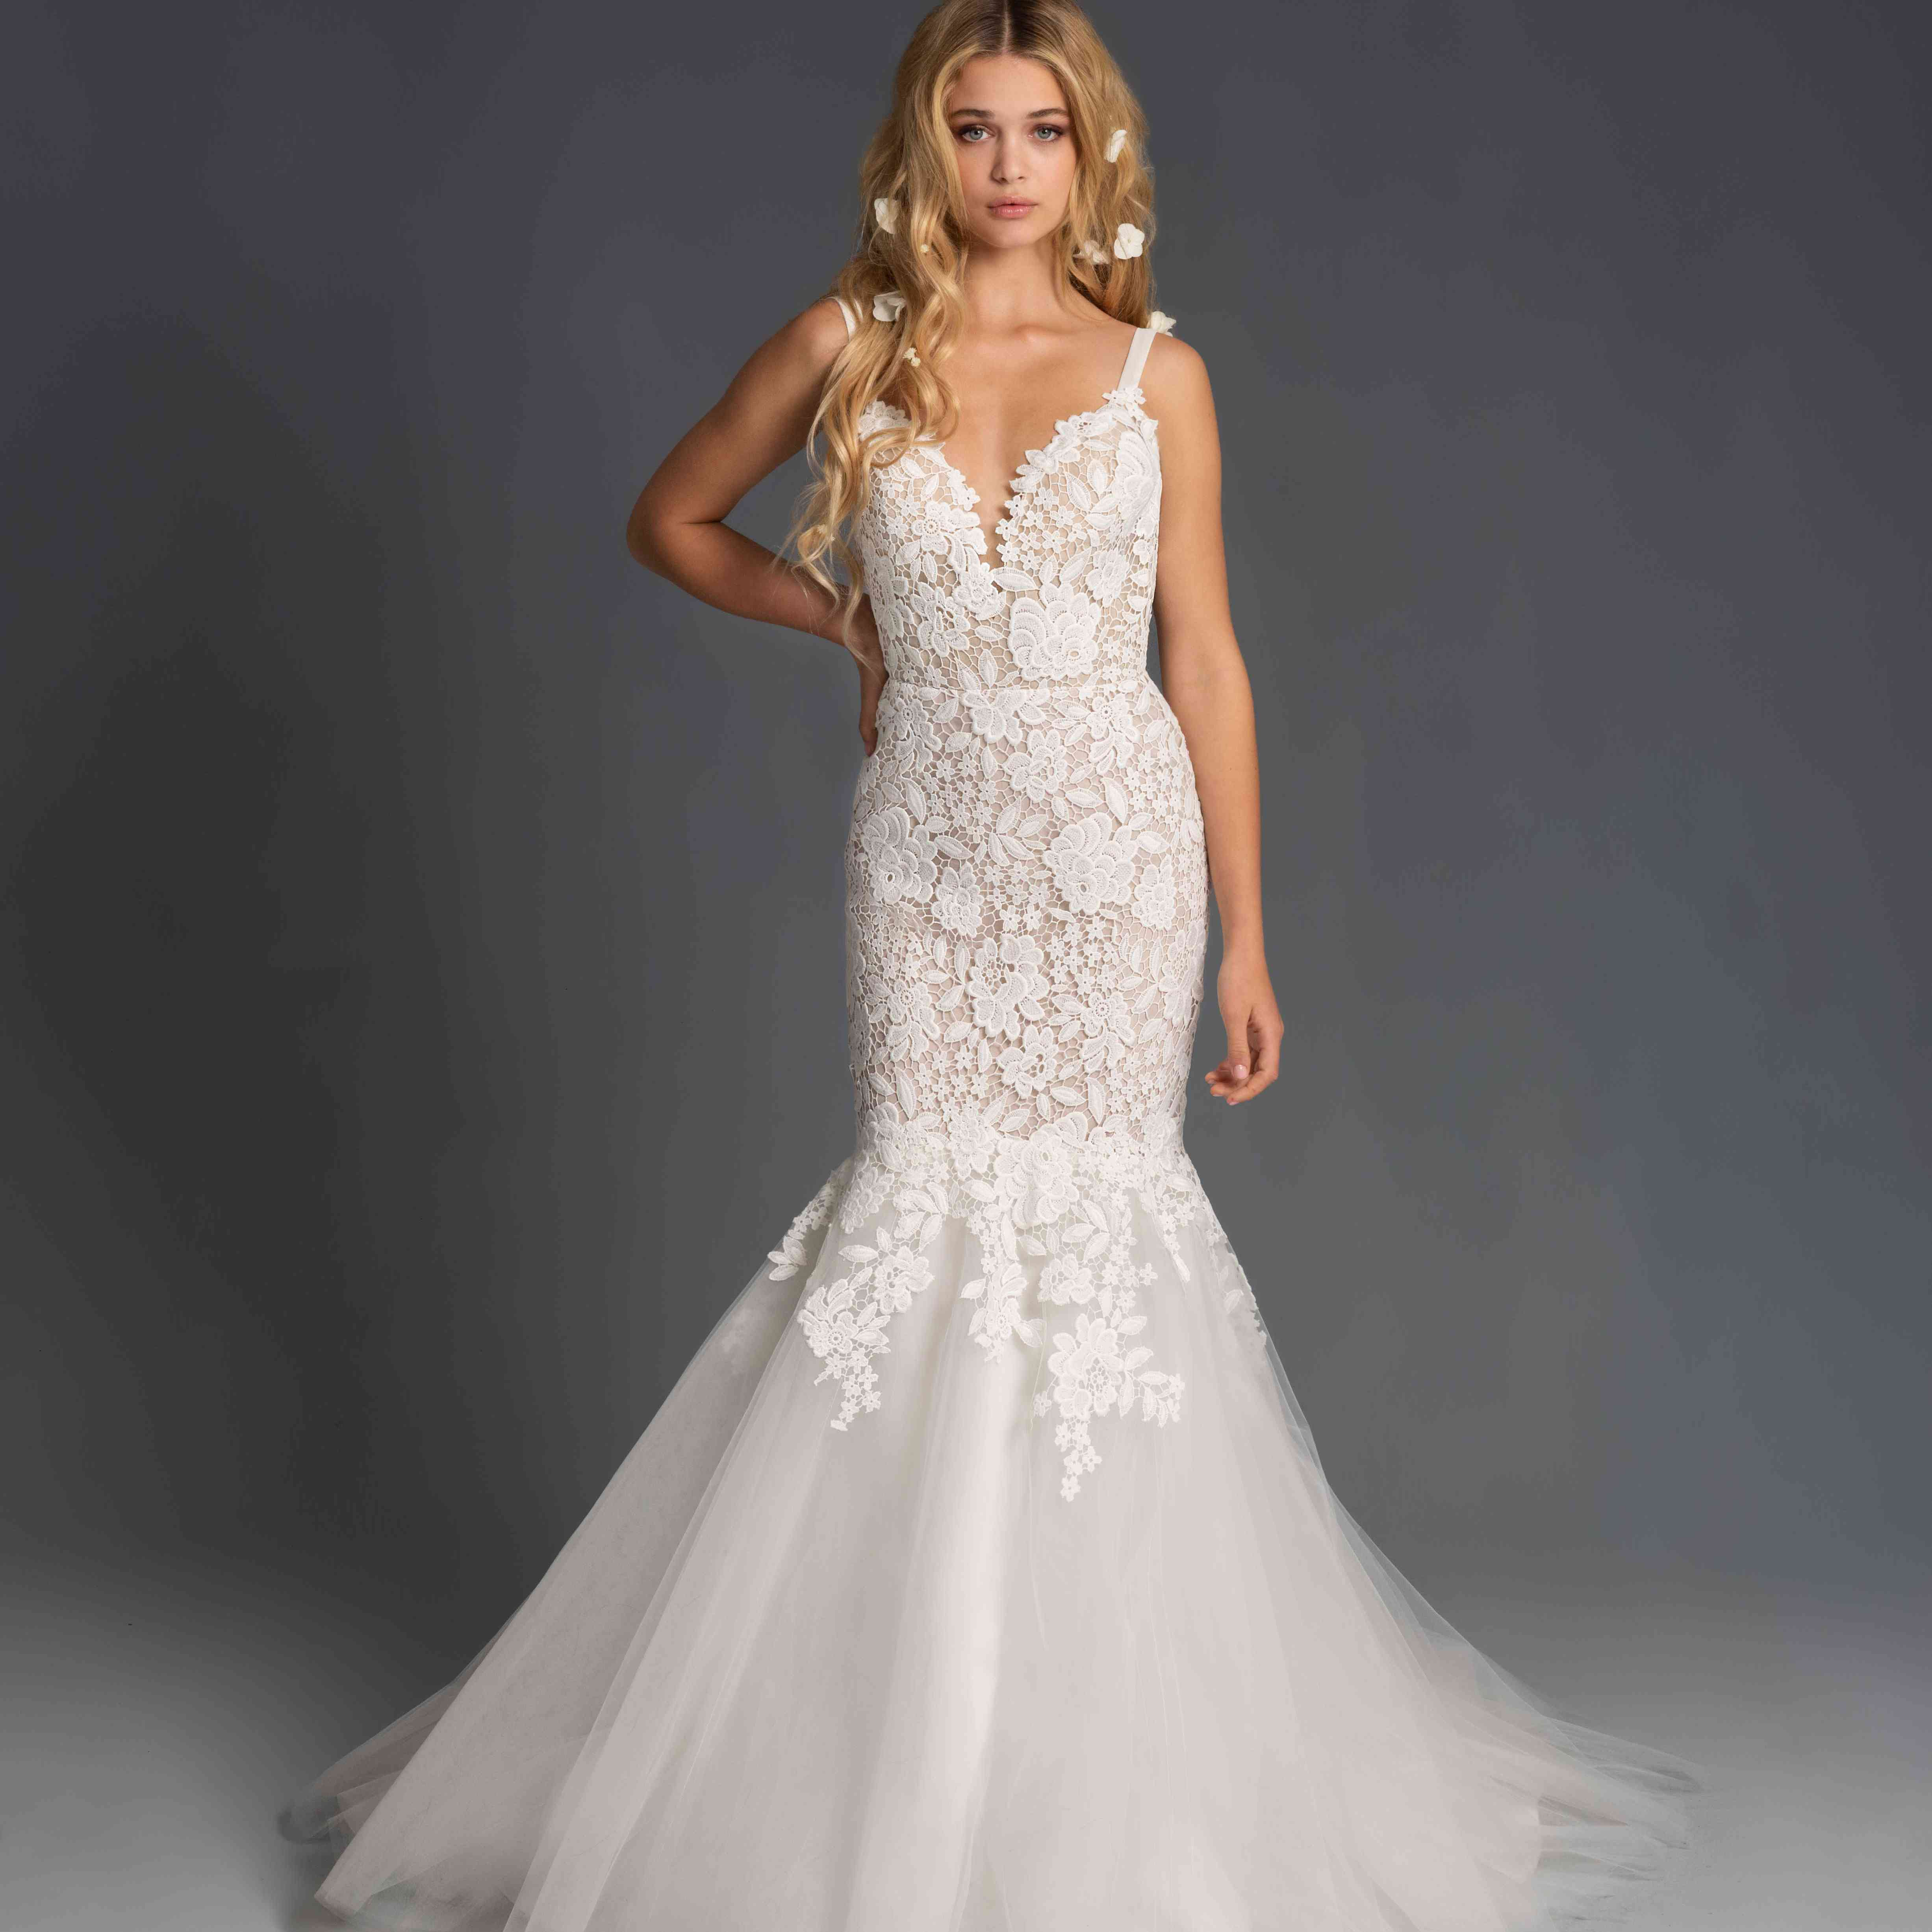 Model in lace fit-and-flare wedding dress